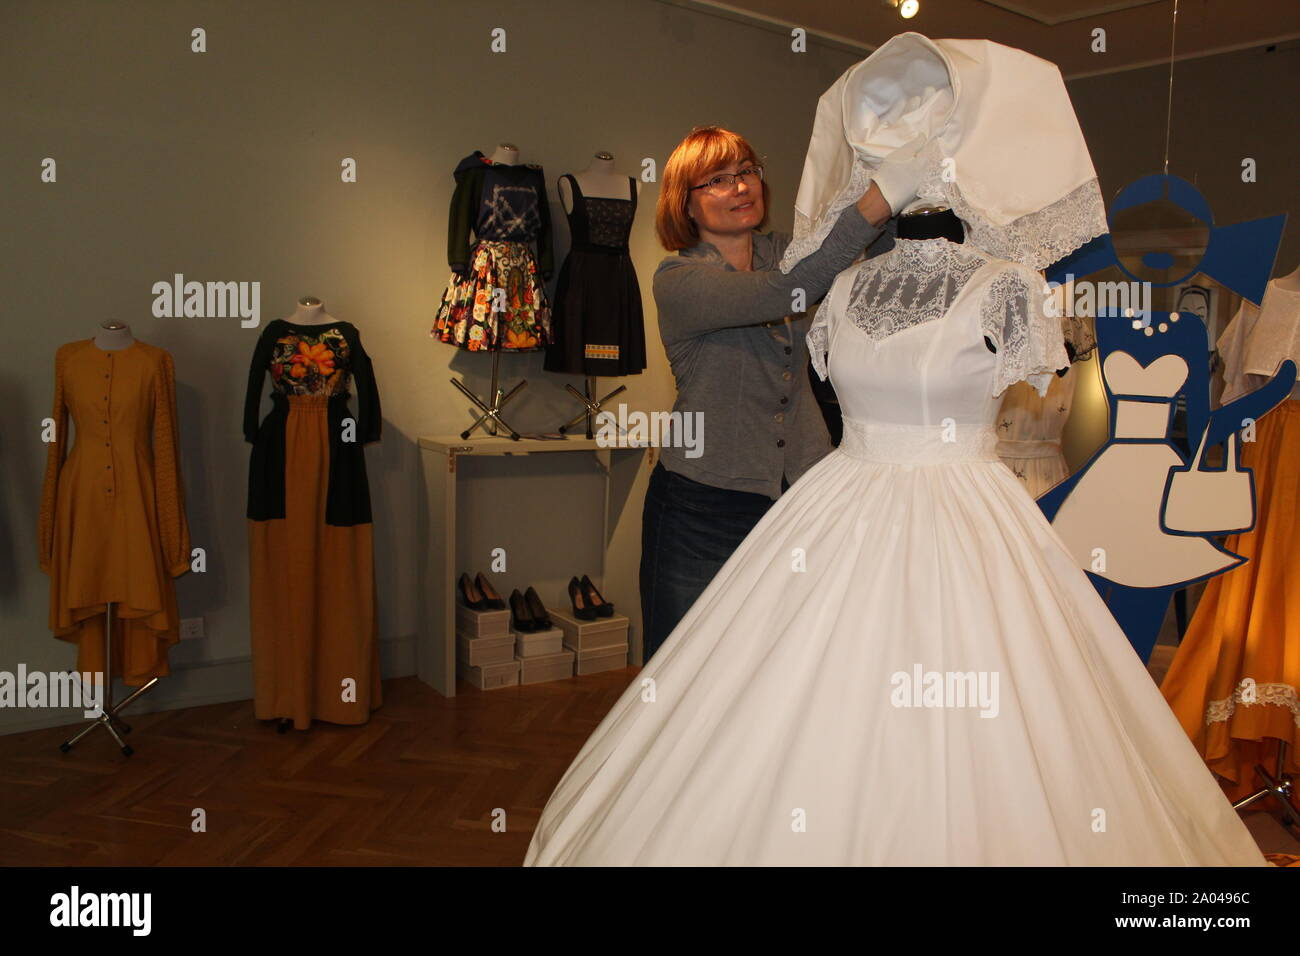 """19 September 2019, Saxony, Bautzen: The exhibition curator Andrea Paulick in Sorbian Street Style stands in the exhibition """"Sorbian Street Style"""" in the Sorbian Museum next to a modern Sorbian wedding dress. The traditional costumes disappear more and more from the everyday life of Lusatia. The Sorbian Museum Bautzen is now showing how traditional patterns, colours, cuts and shapes can be turned into wearable everyday fashion. (to """"Exhibition """"Sorbian Street Style"""": Creative inspirations from the chest"""") Photo: Miriam Schönbach/dpa-Zentralbild/ZB Stock Photo"""